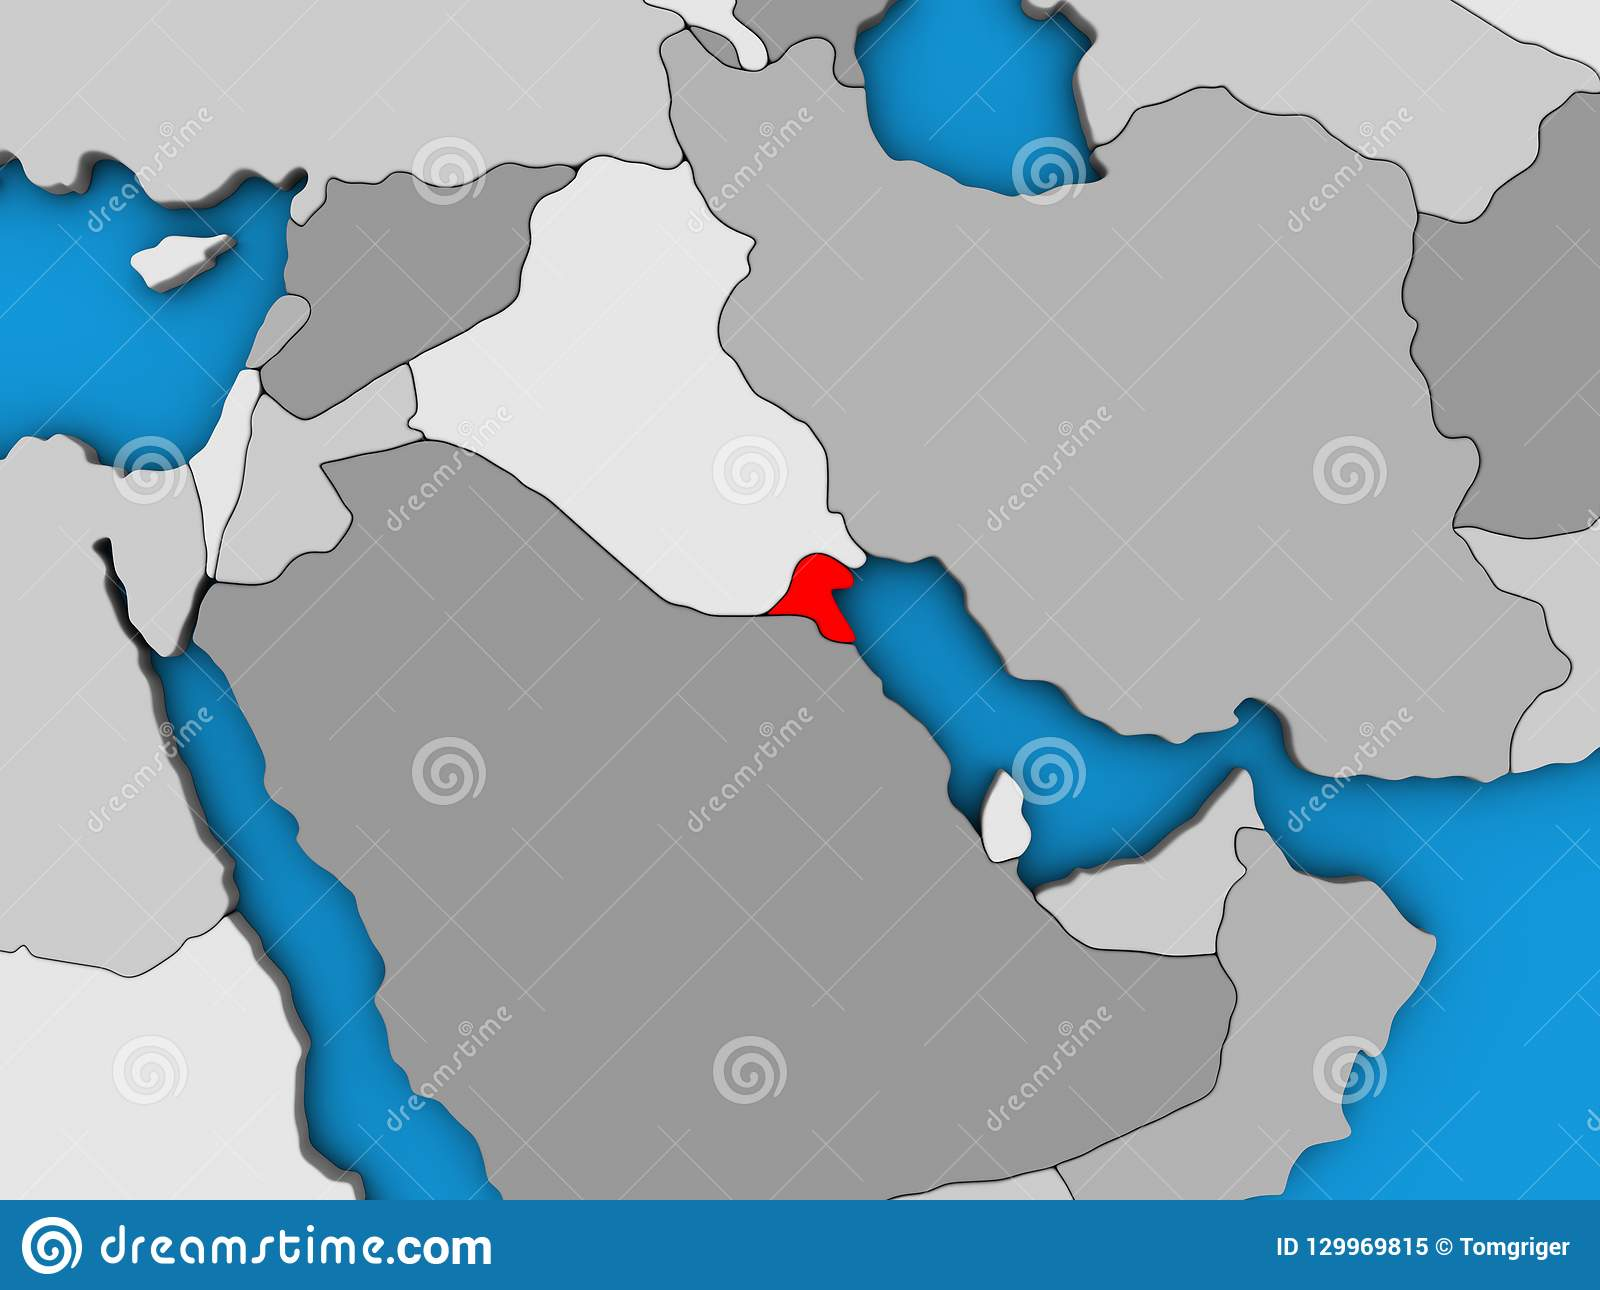 euphrates river on a map, iraq on a map, yemen on a map, turkey on a map, dubai on a map, cyprus on a map, israel on a map, jordan on a map, karachi on a map, lesotho on a map, pakistan on a map, albania on a map, tigris river on a map, bahrain on a map, lebanon on a map, tunisia on a map, dead sea on a map, brunei on a map, djibouti on a map, qatar on a map, on kuwait on a map